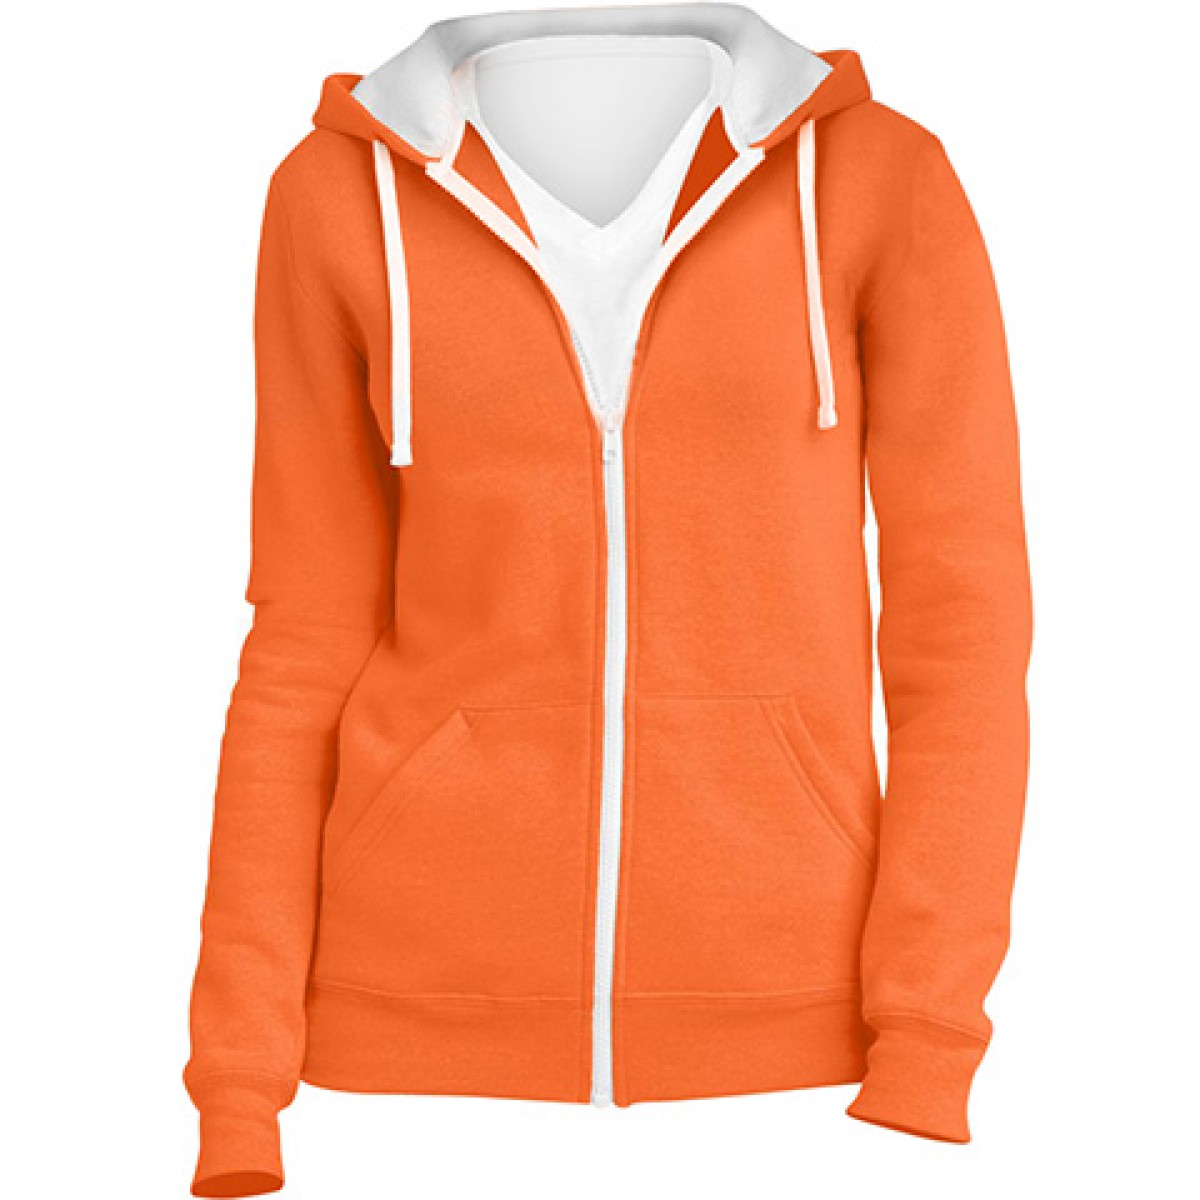 Juniors Full-Zip Hoodie-Neon Orange -2XL